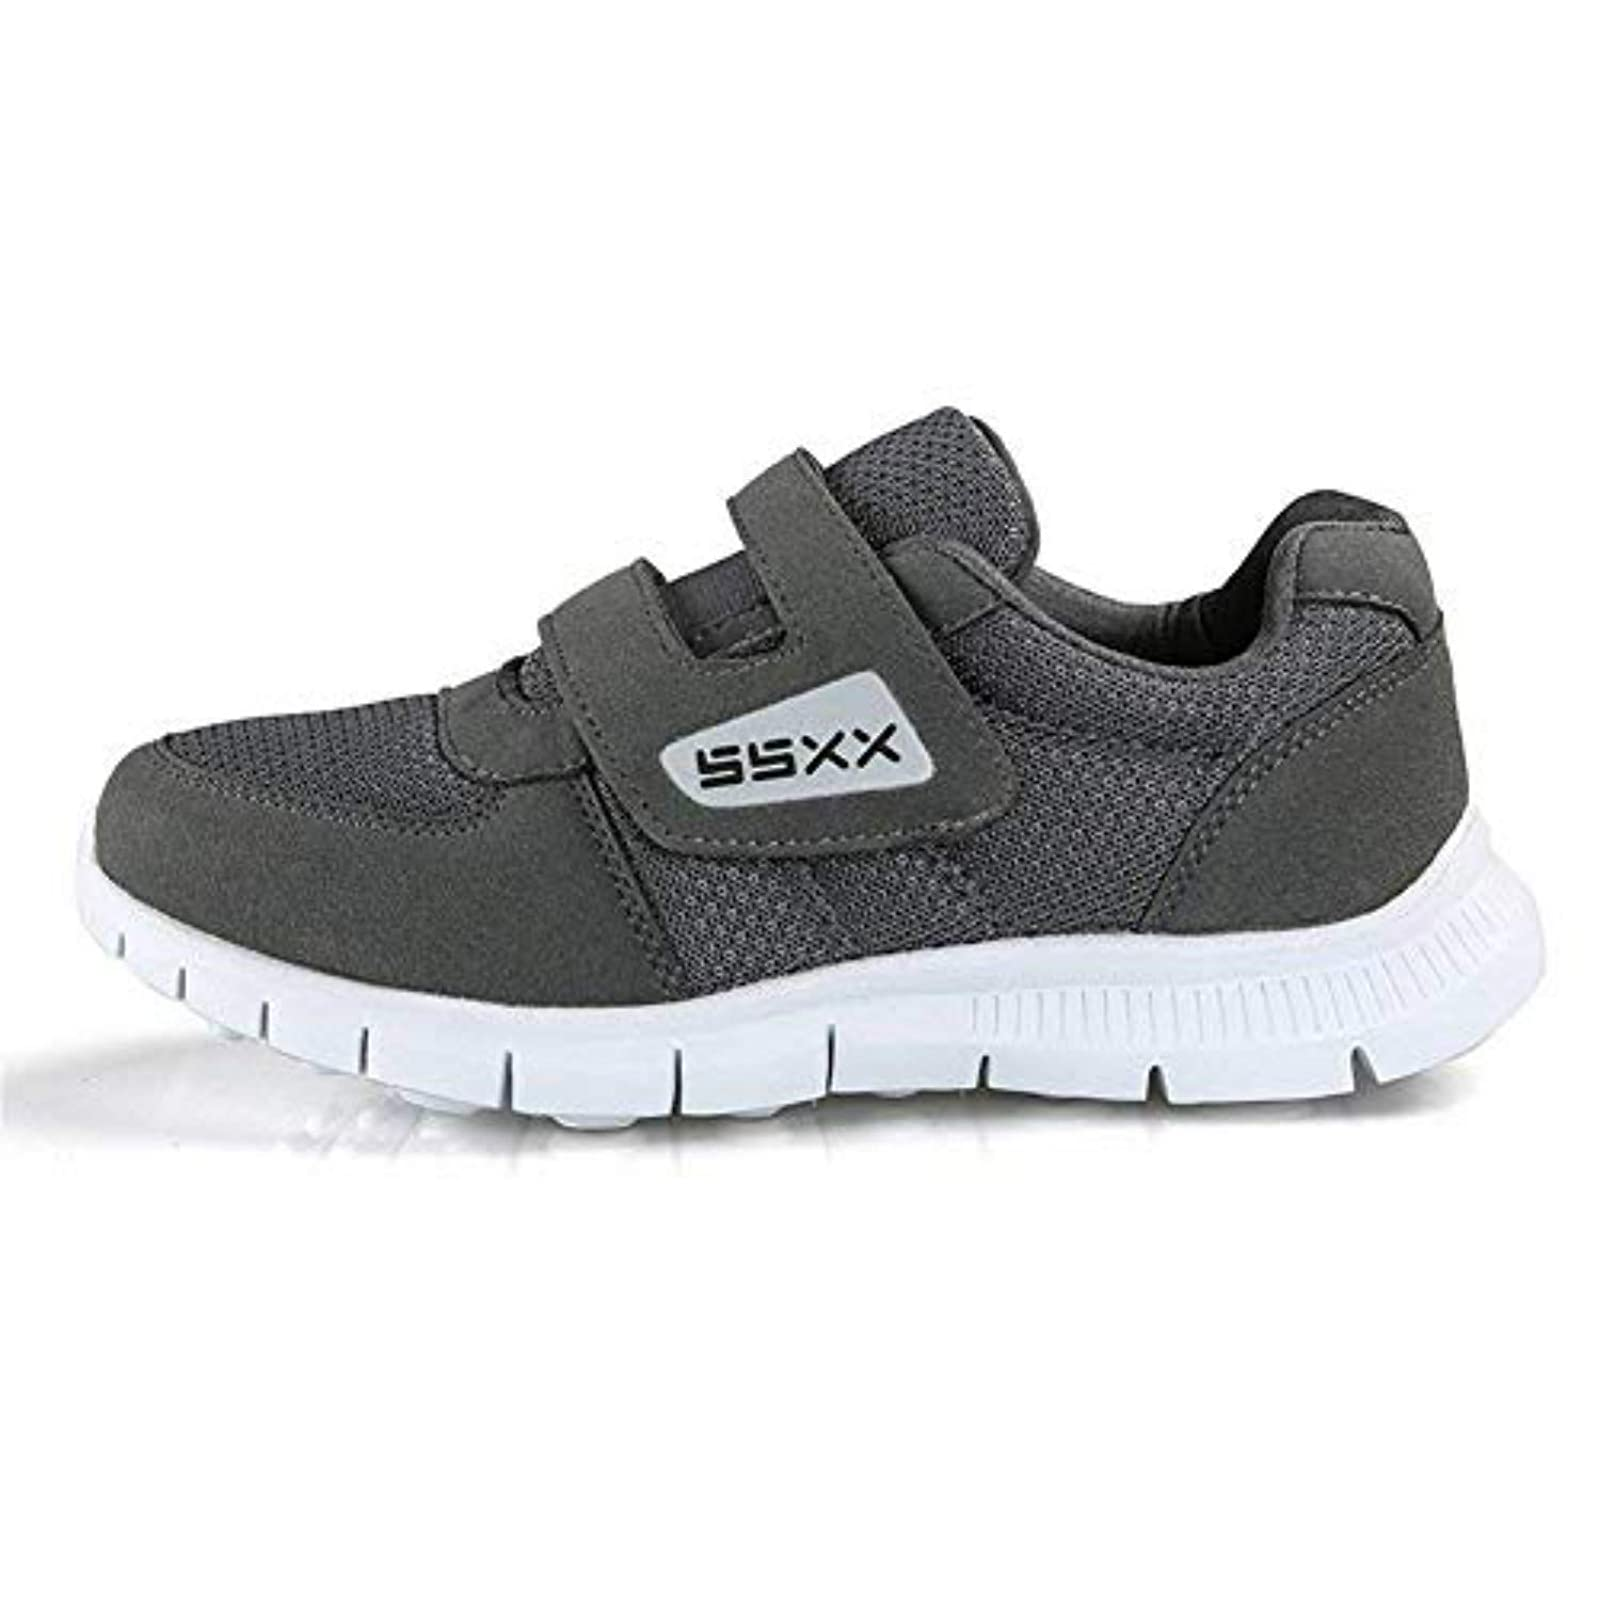 Fires Men's Casual Sneakers Lightweight Athletic - 1